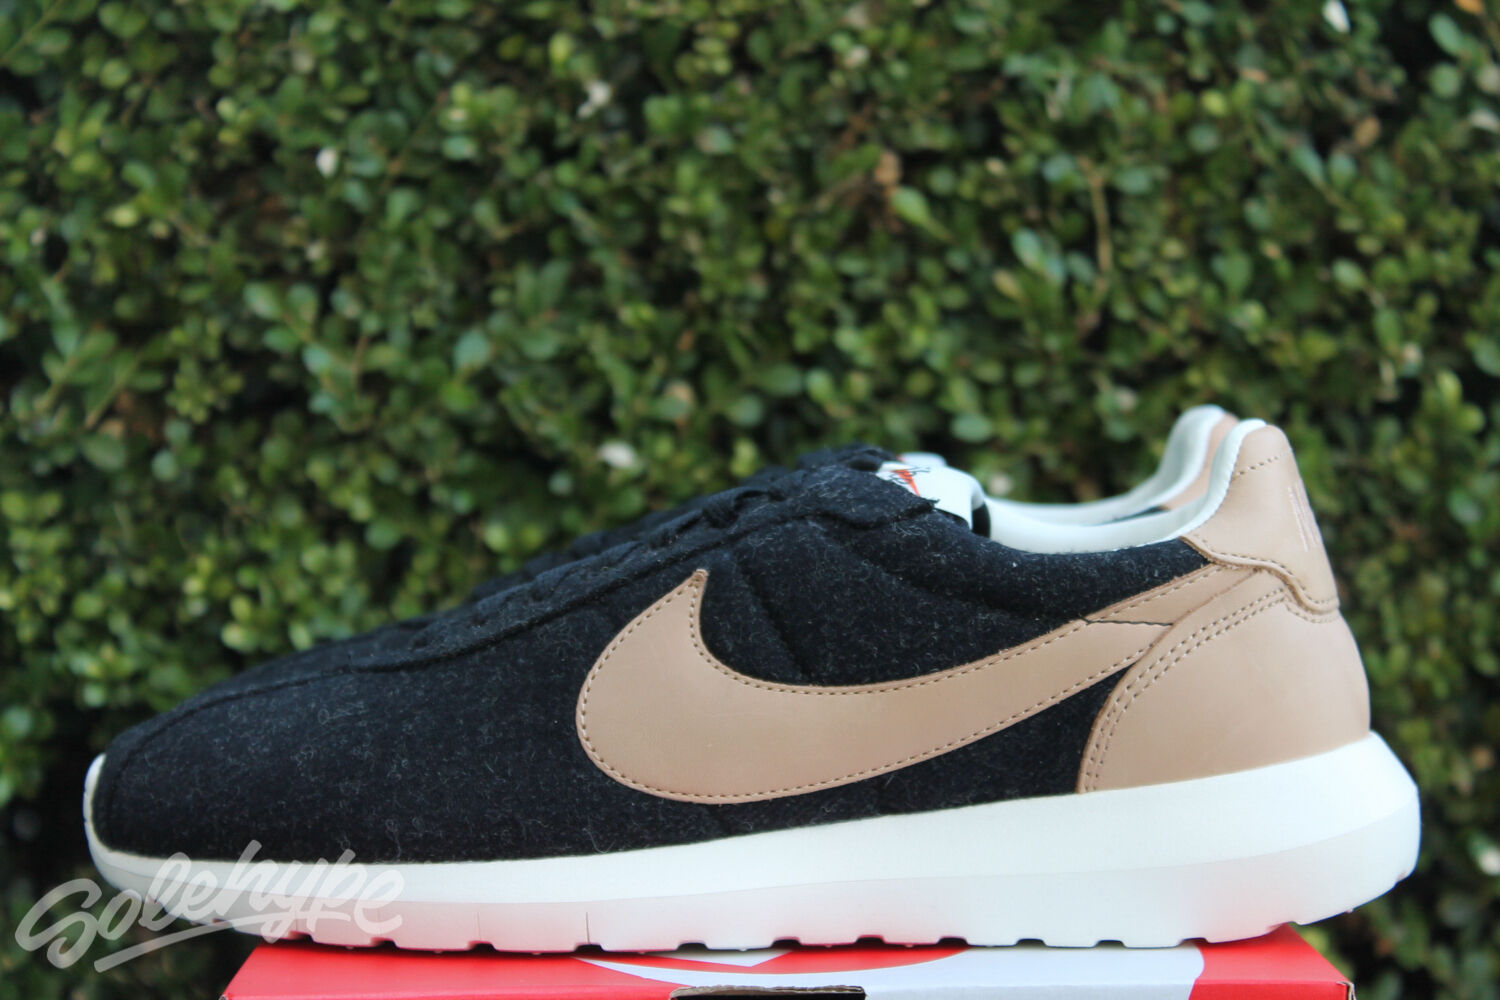 NIKE ROSHE LD - 1000 SZ 001 10.5 WOOL BLACK VACHETTA TAN LEATHER 844266 001 SZ 46a08b